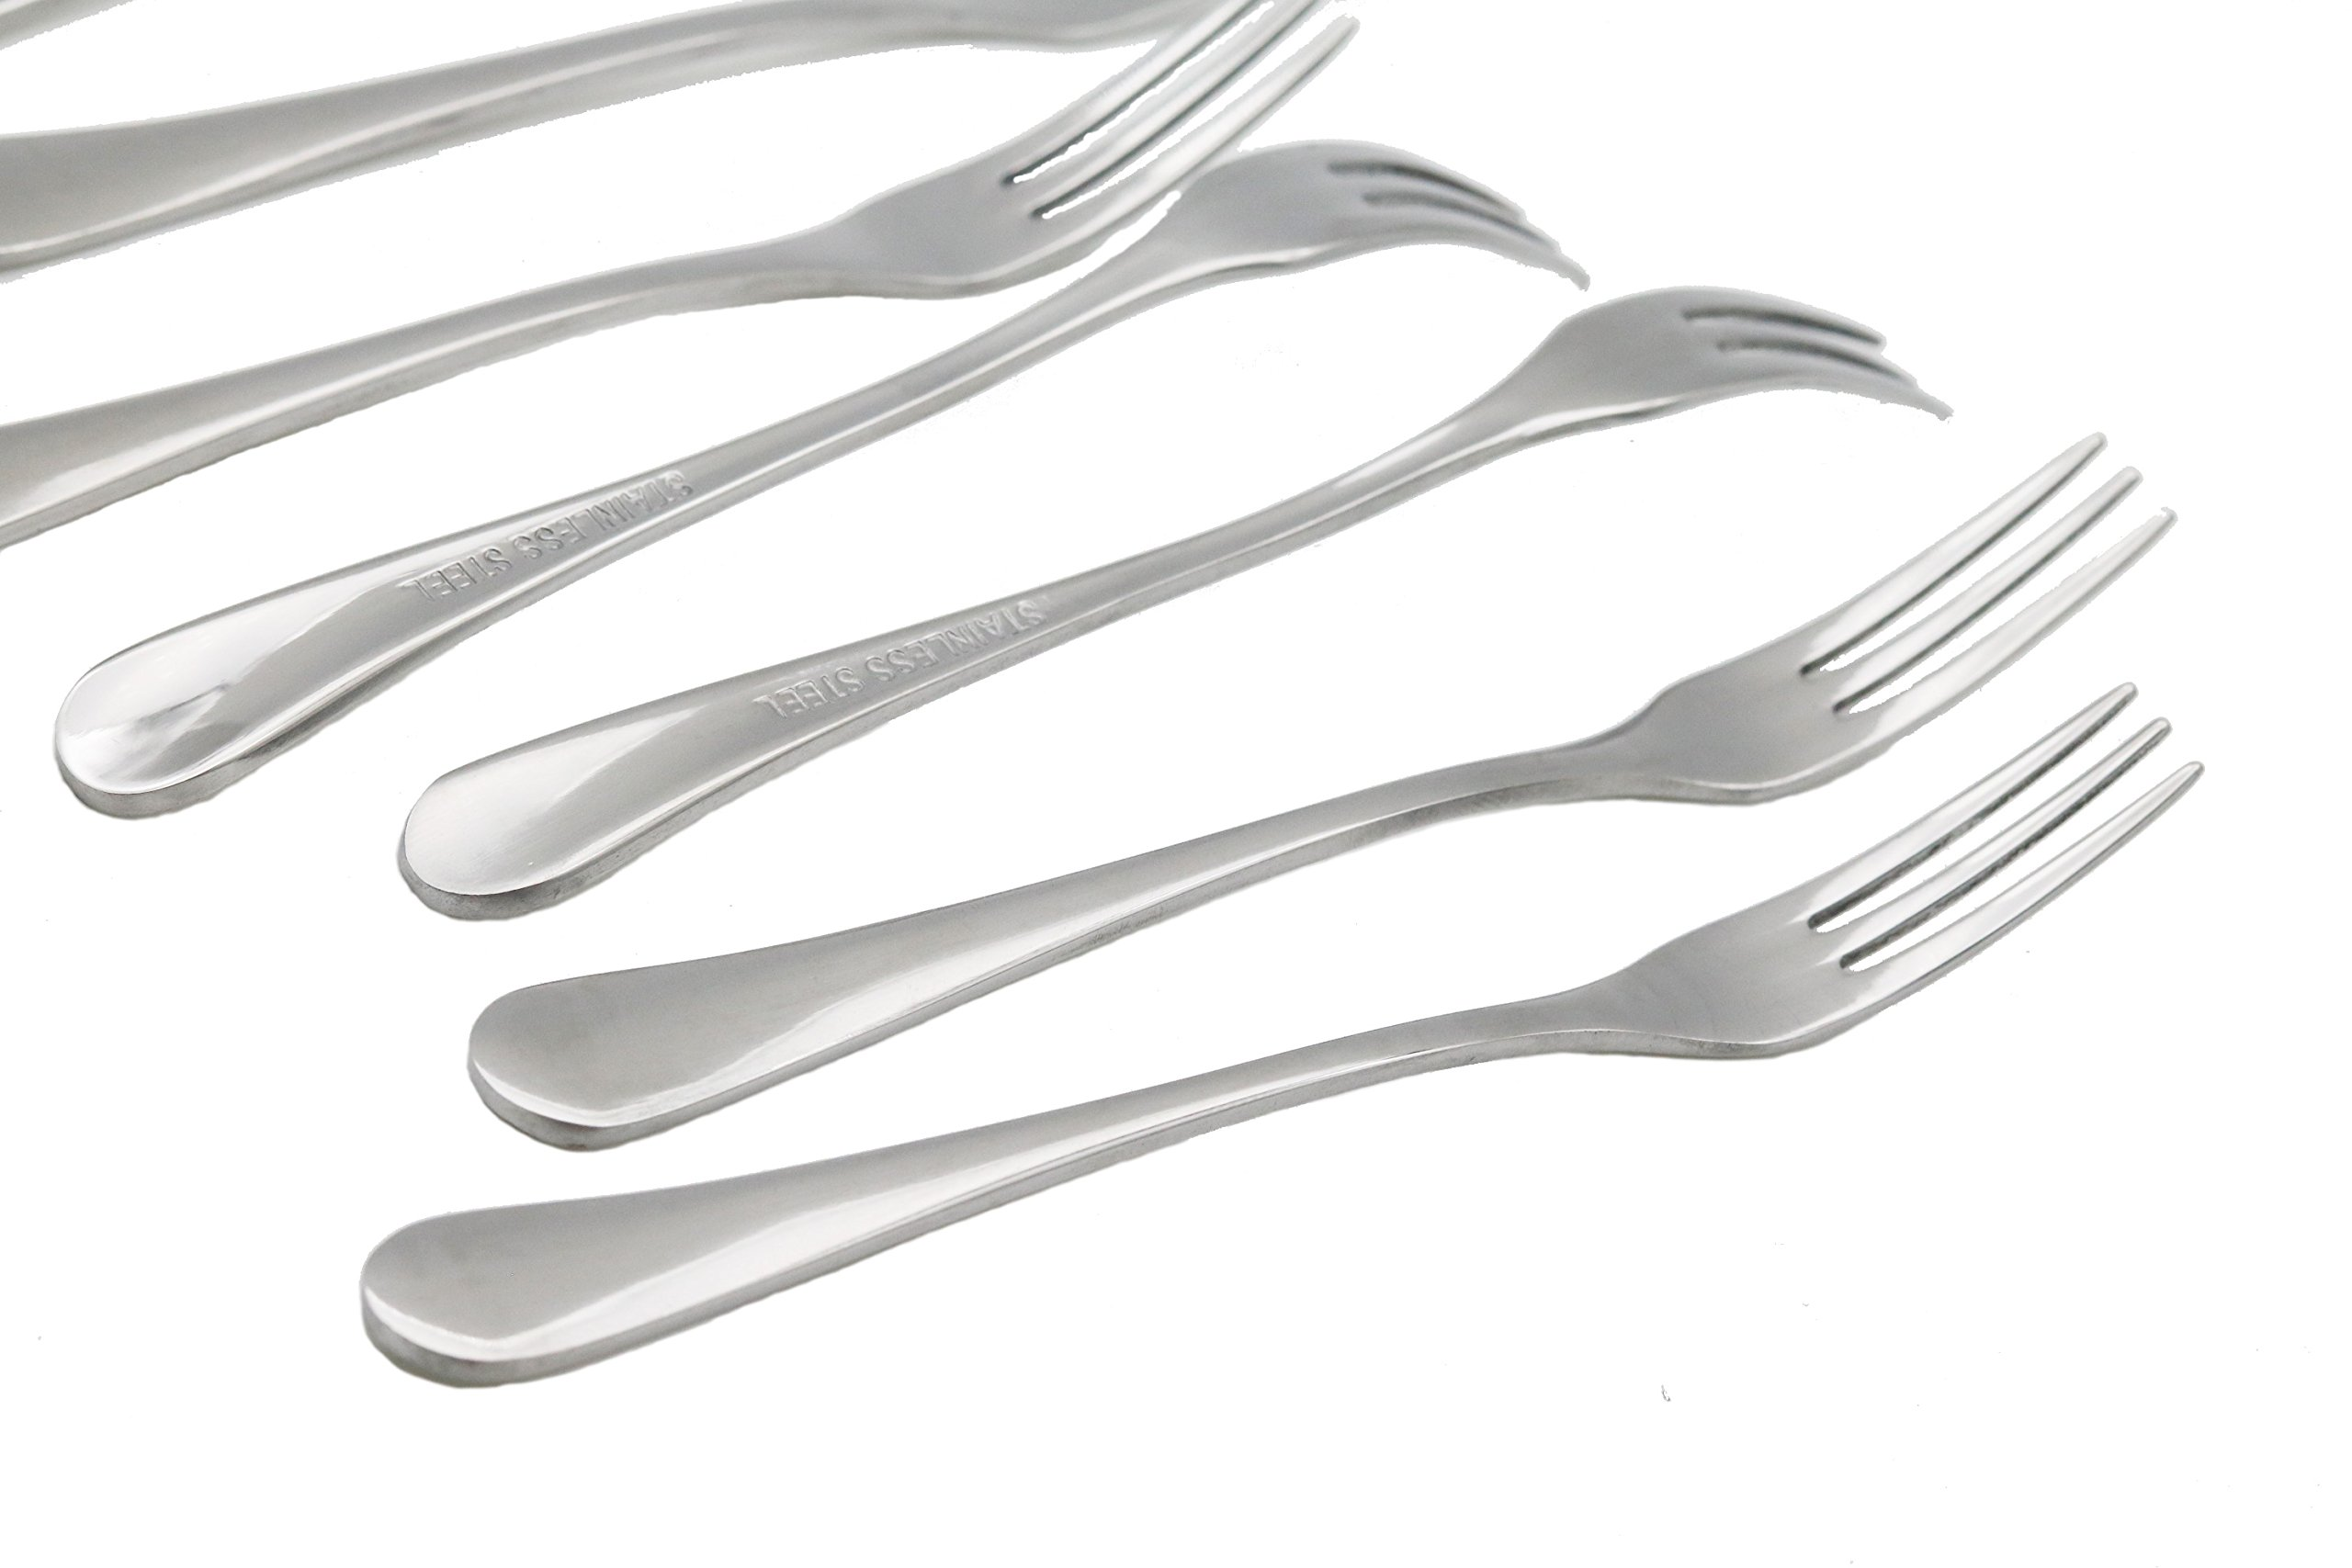 Fruit Forks, Koyaya lifestyles 8-piece Stainless Steel Three Prong Forks Bistro Cocktail Forks Tasting Appetizer Forks Set Mini Cake Forks (Fruit-Fork)